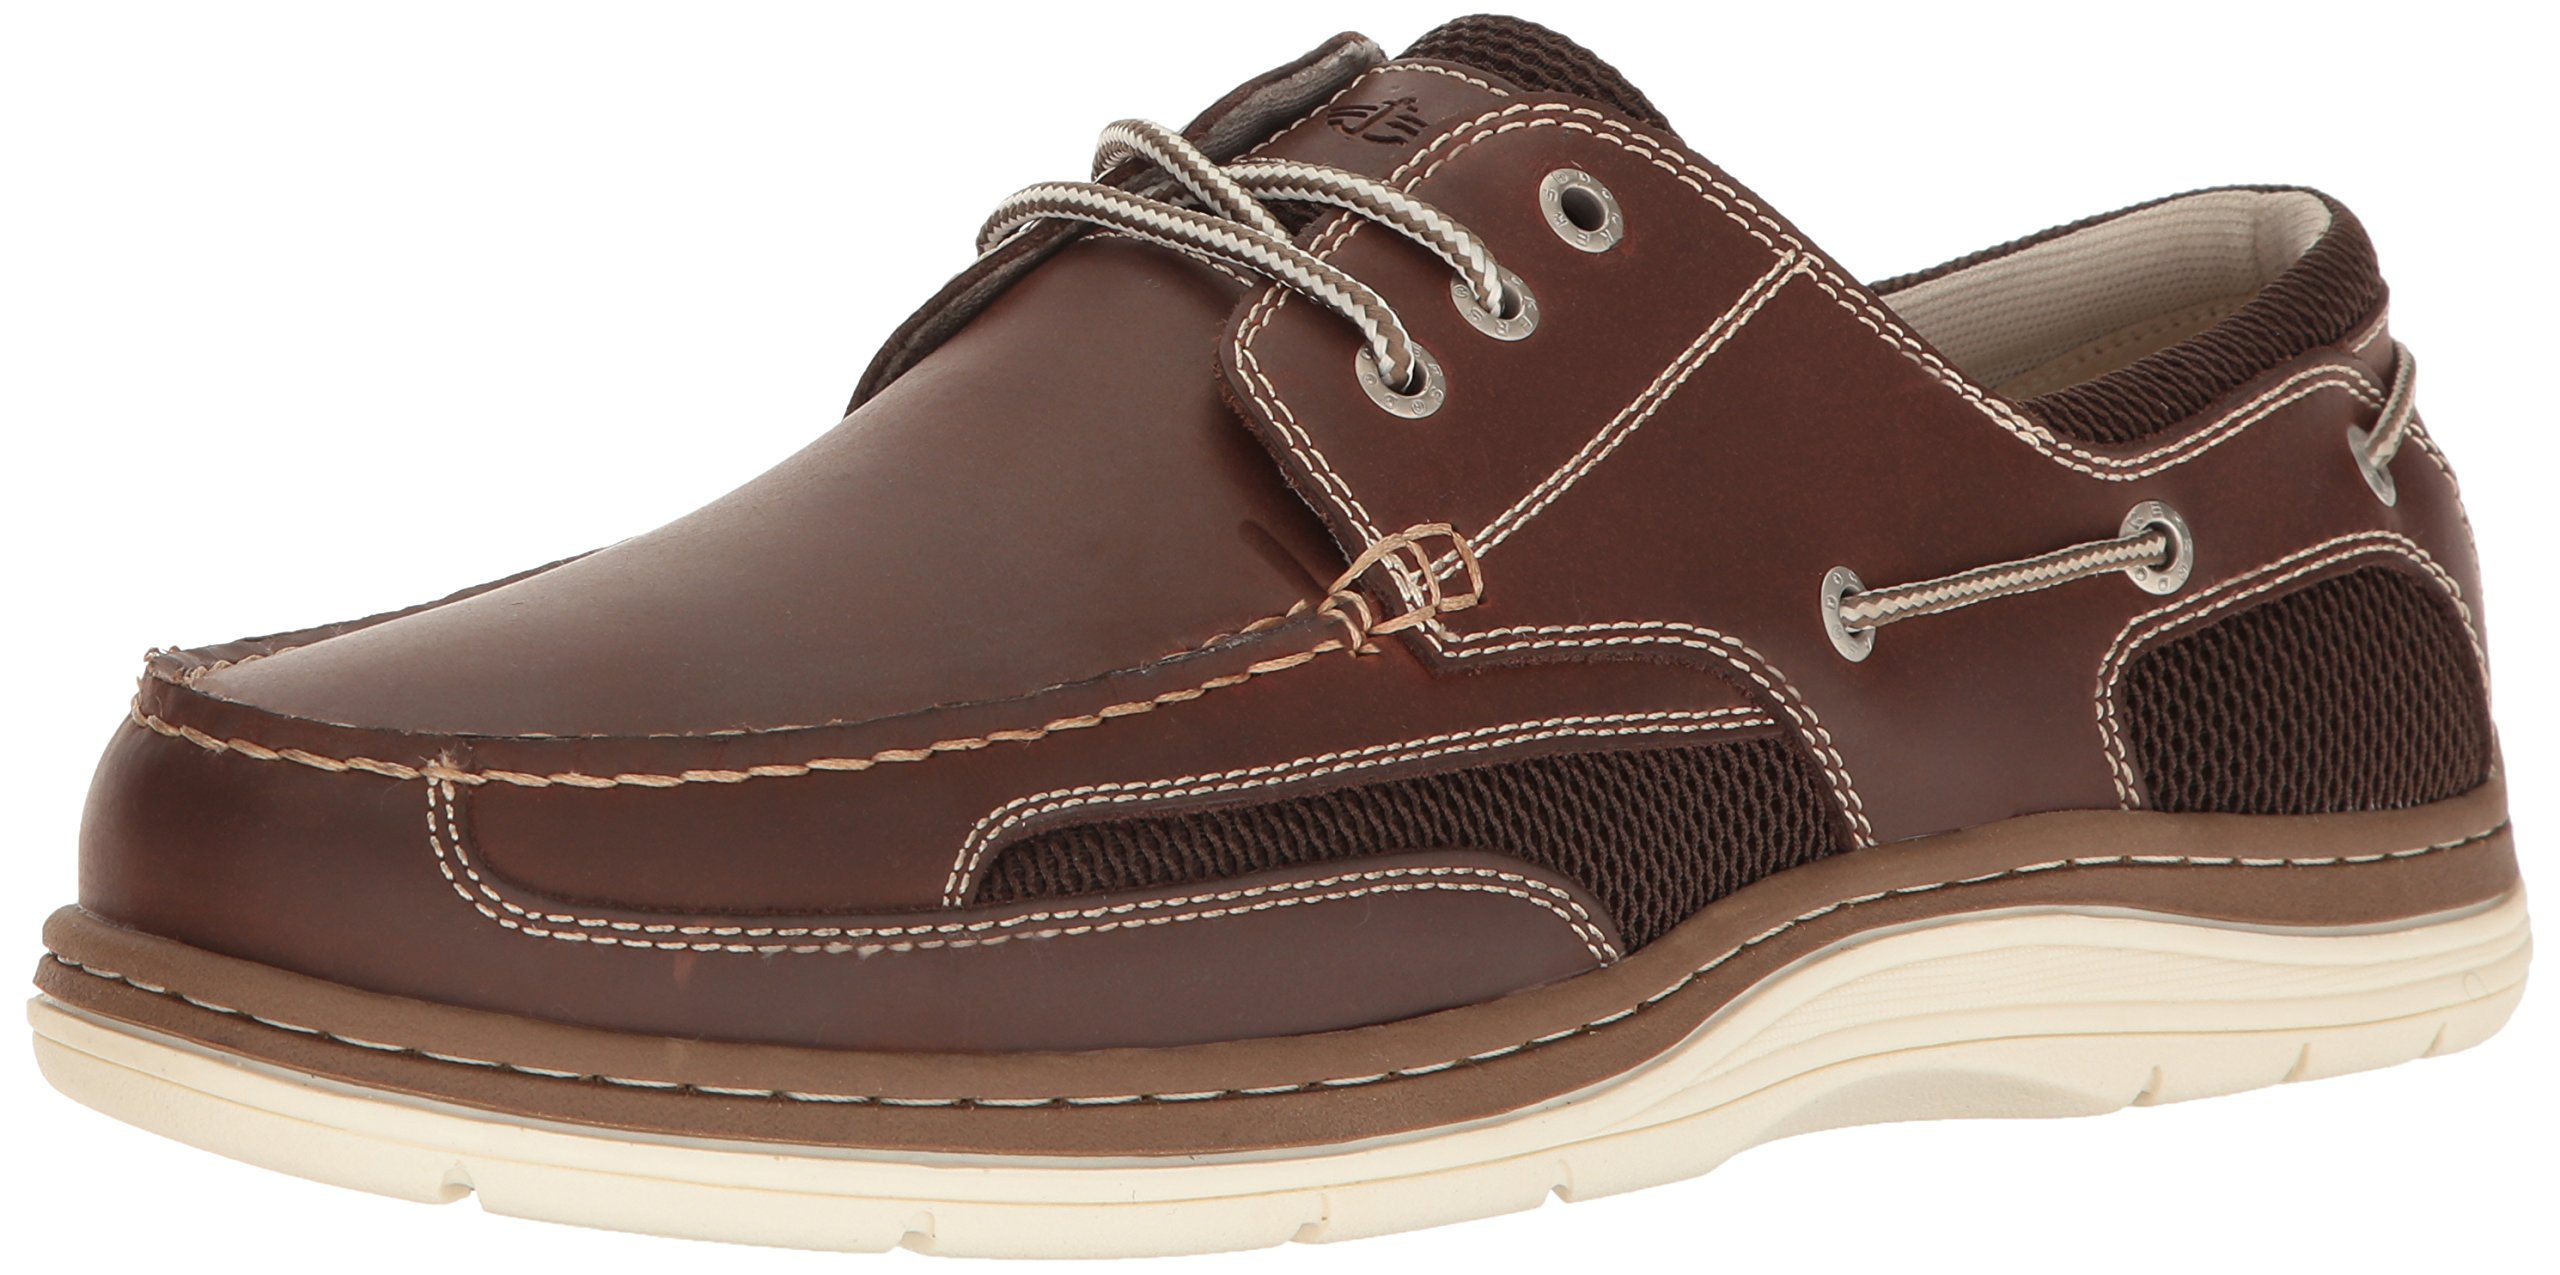 Dockers Men's Lakeport Oxford, Red/Brown, 9.5 M US by Dockers